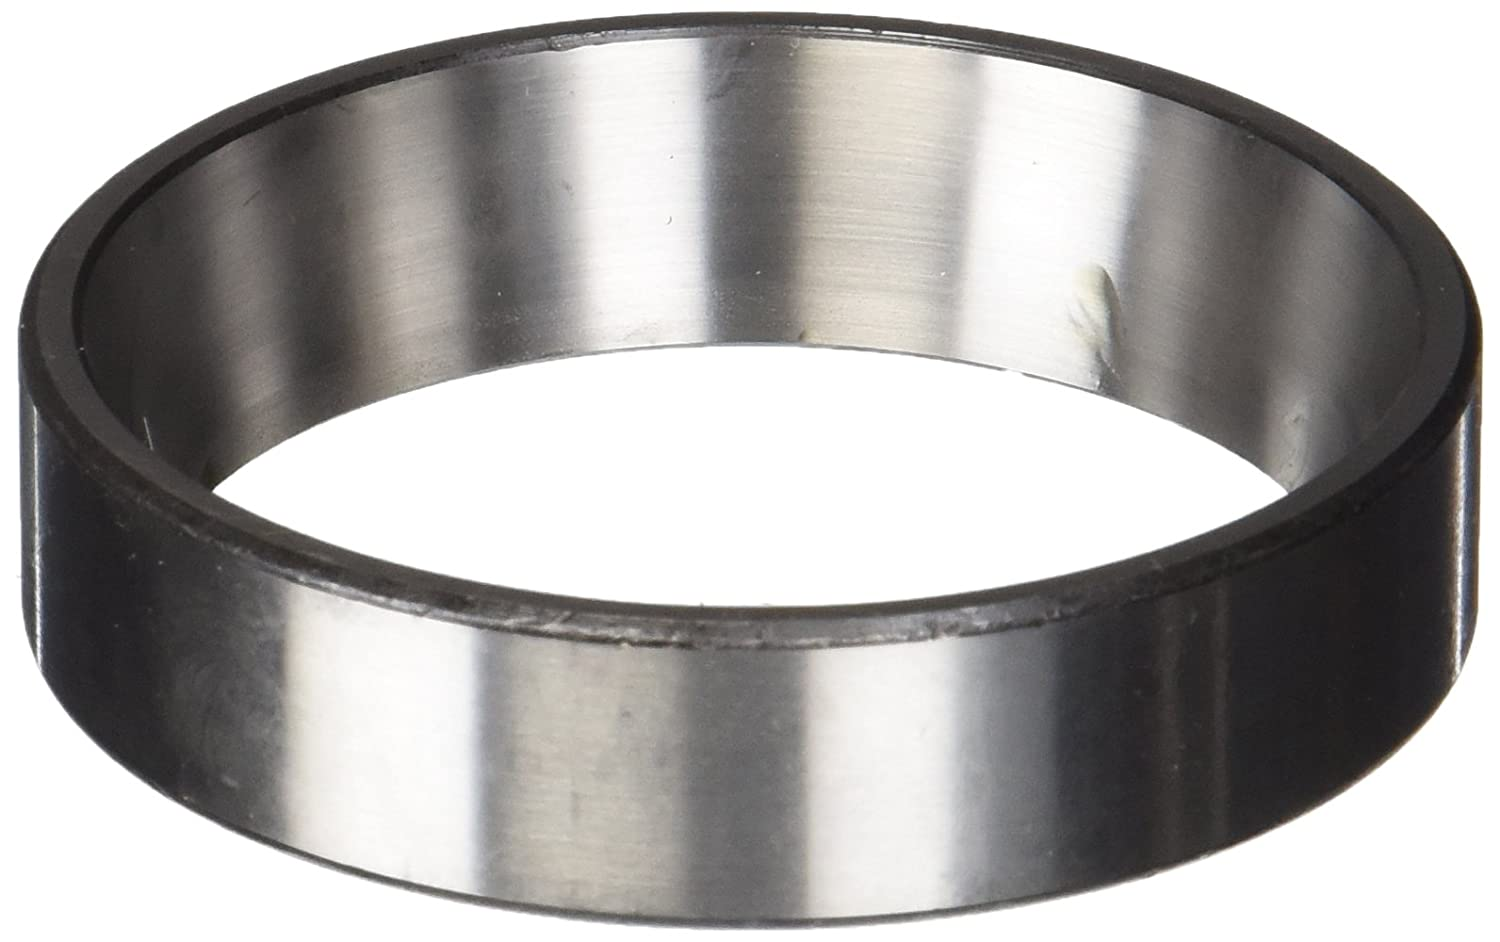 Timken 25520 Tapered Roller Bearing Outer Race Cup, Steel, Inch, 3.265